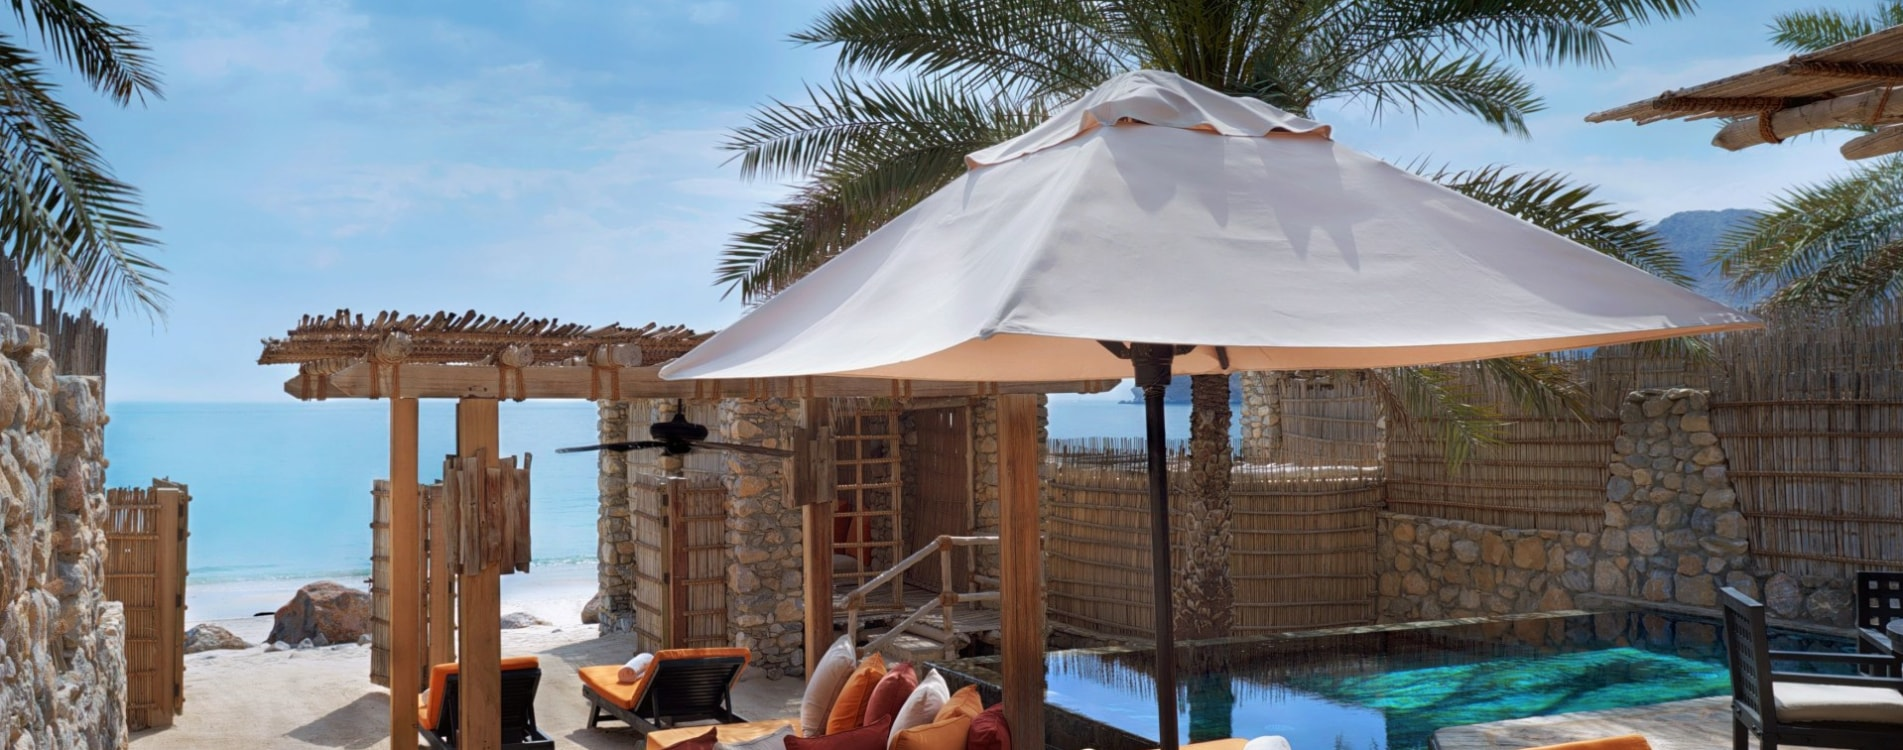 Six-Senses-Zighy-Bay-Pool-Villa-Beachfront-Pool-Sonnenliegen-Oman.jpg